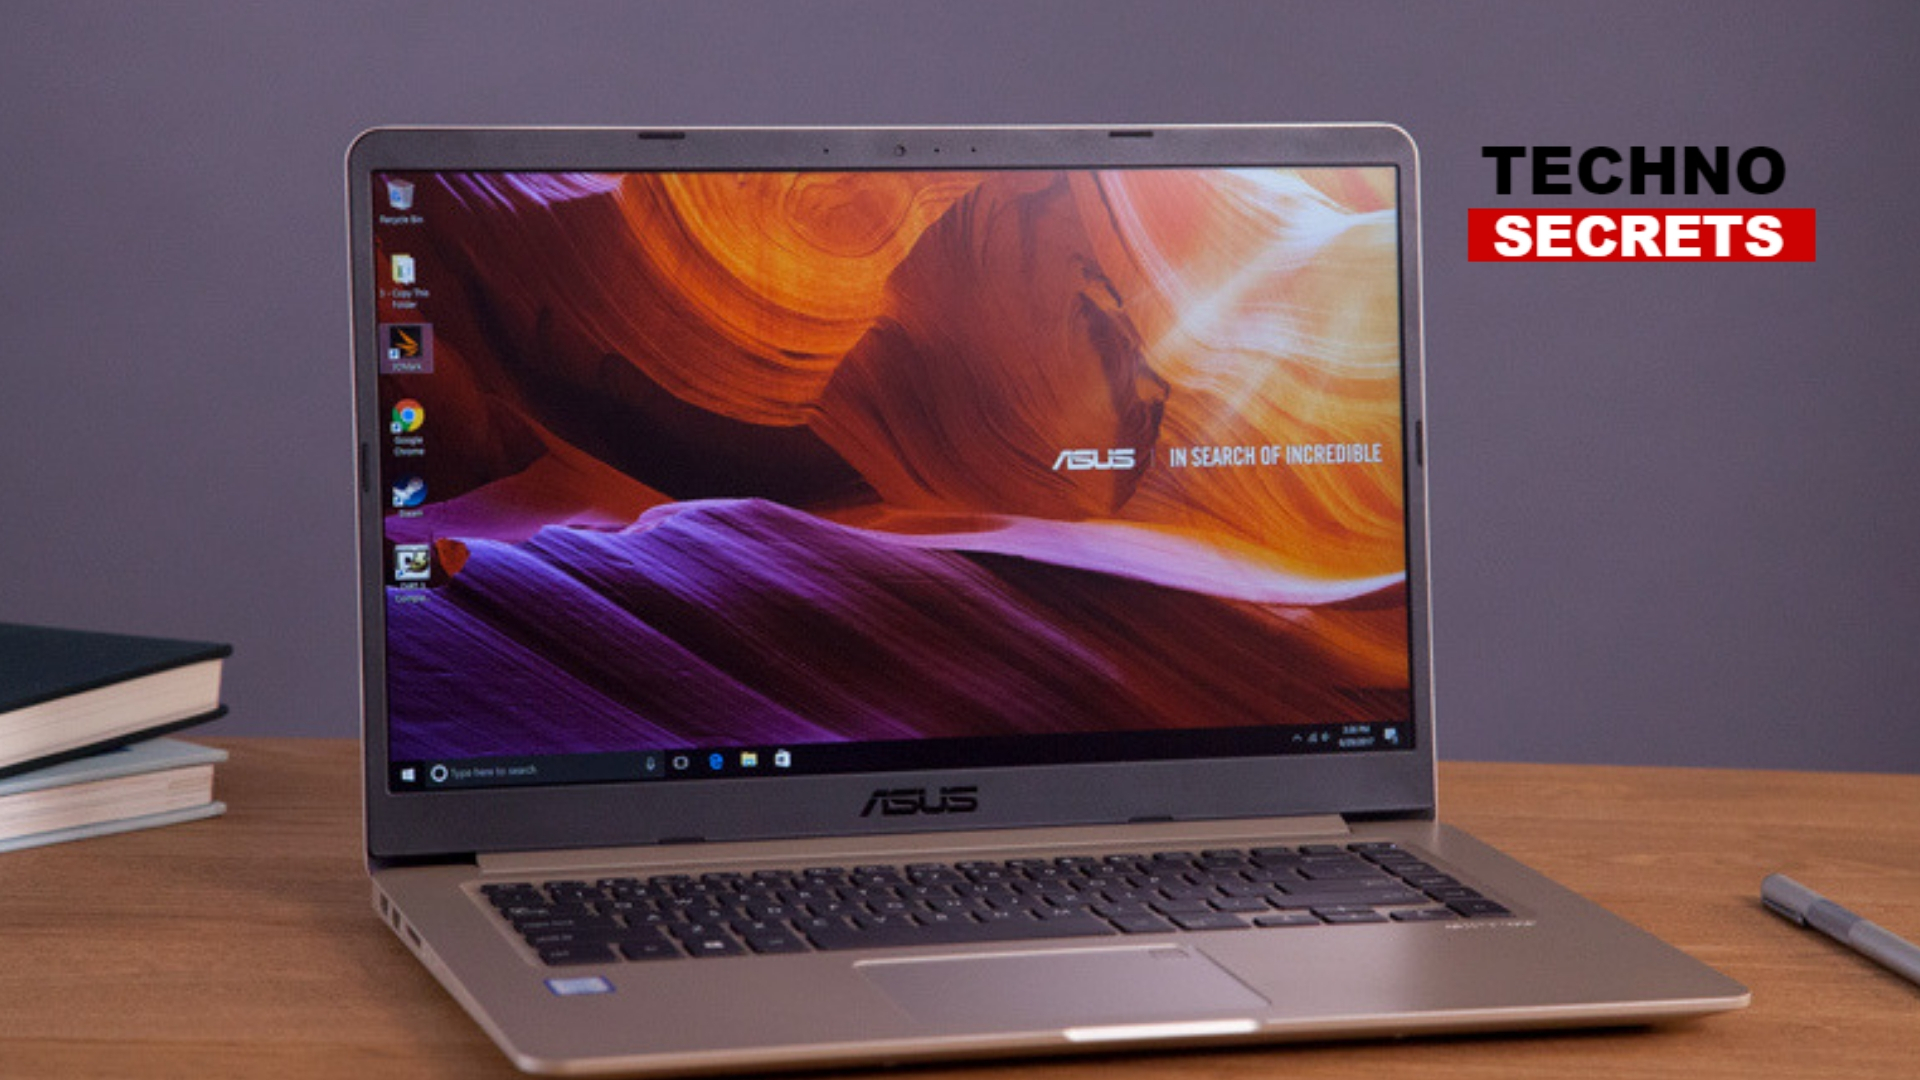 Asus VivoBook 15: Affordable Price With Powerful AMD Ryzen 5 Processor